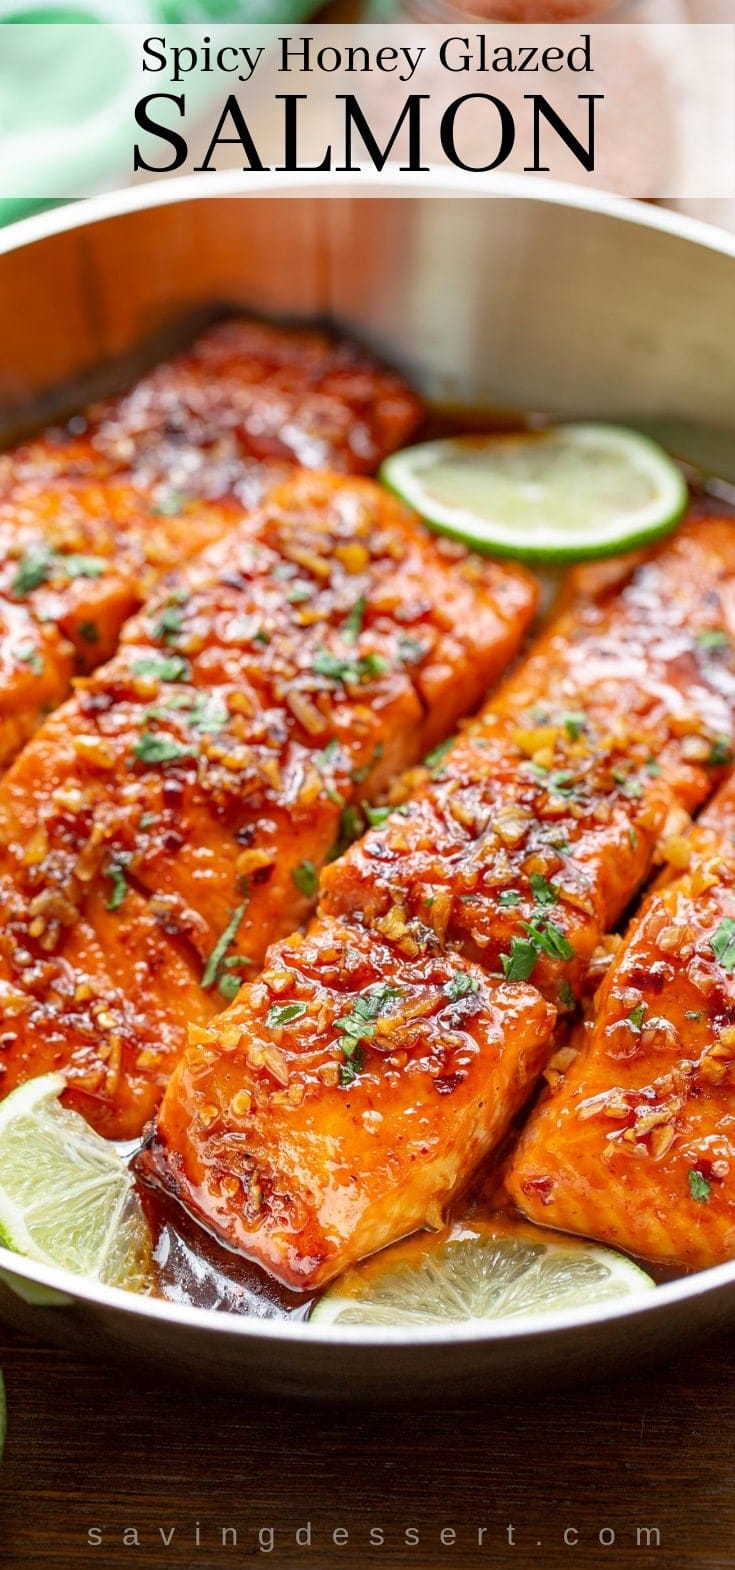 A skillet with Spicy Honey Glazed Salmon garnished with sliced lime